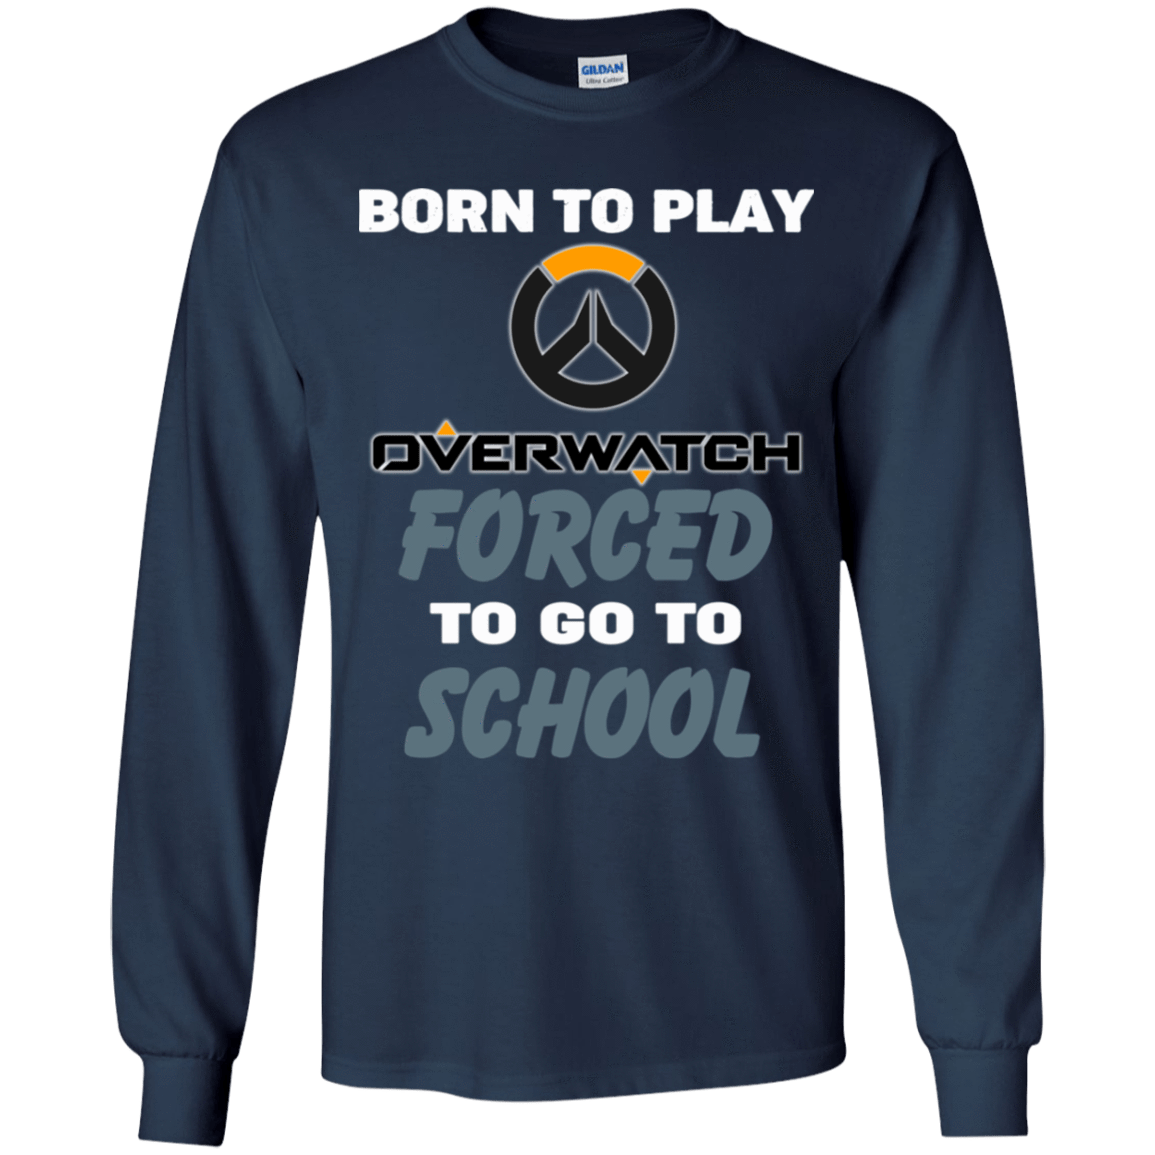 Born To Play Overwatch Forced To Go To School 56-321-74209659-1228 - Tee Ript